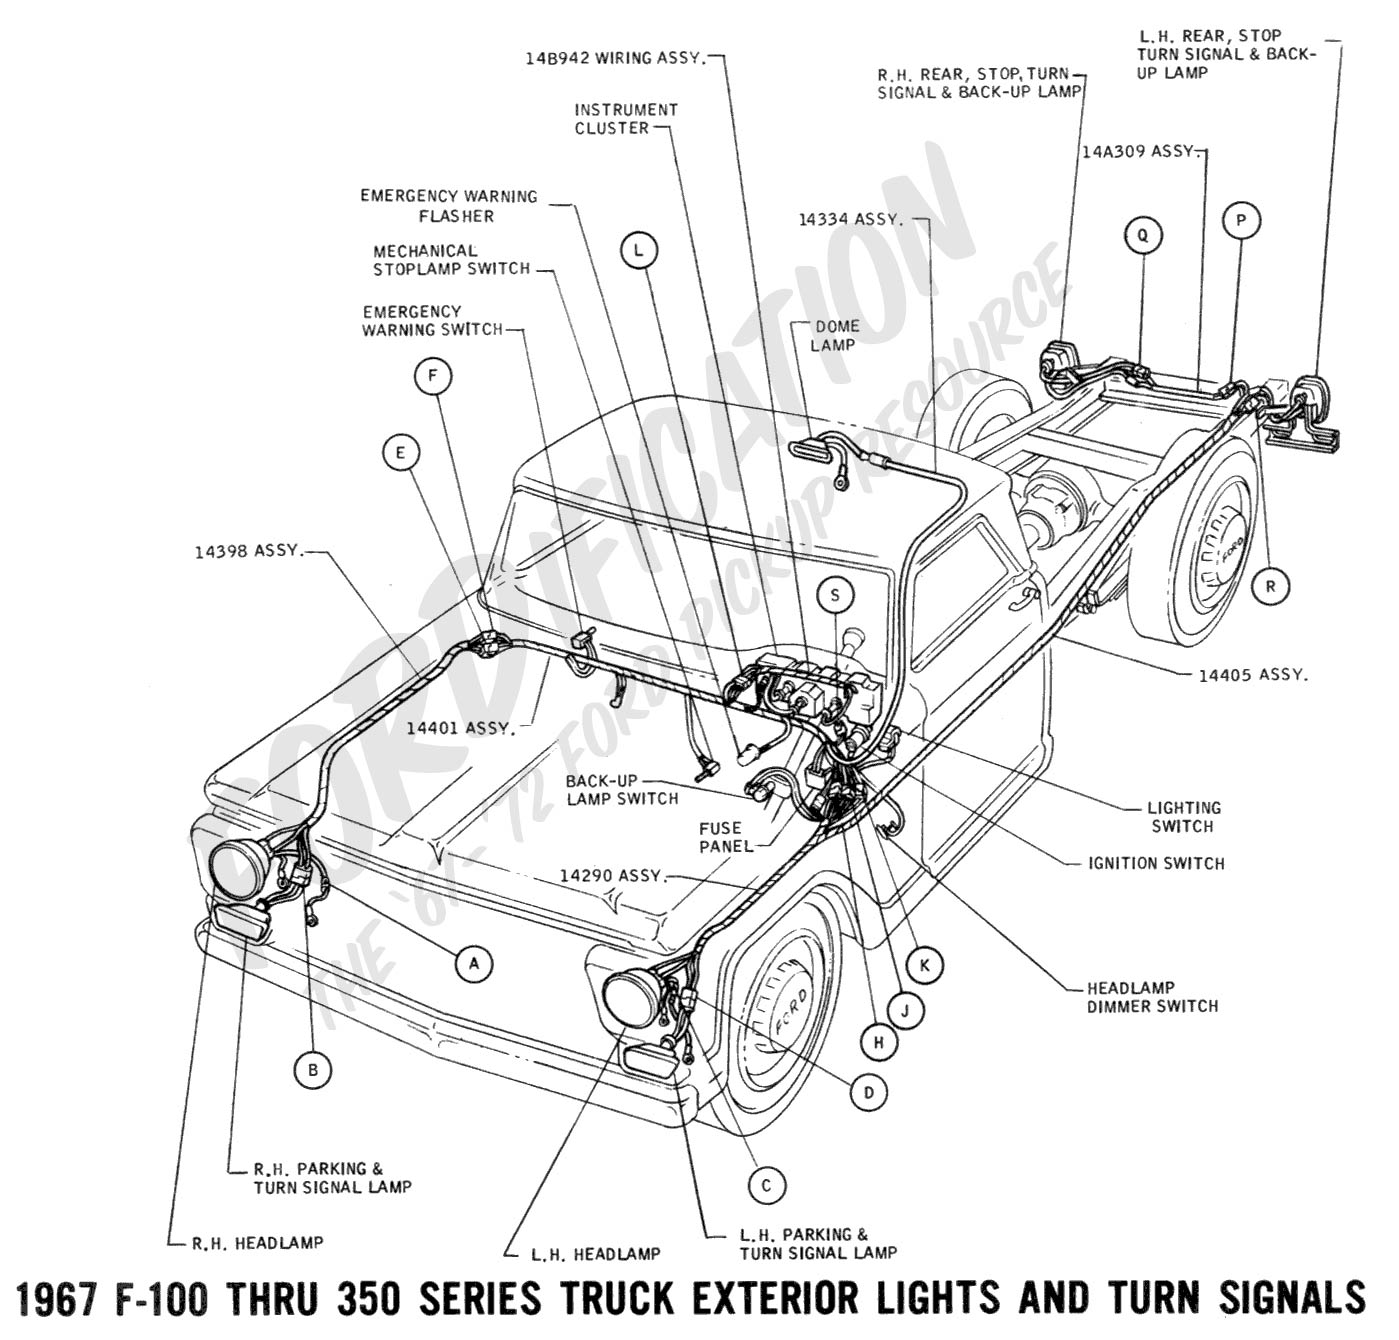 wiring 1967extlights01 ford truck technical drawings and schematics section h wiring 1999 ford ranger xlt wiring diagrams at reclaimingppi.co